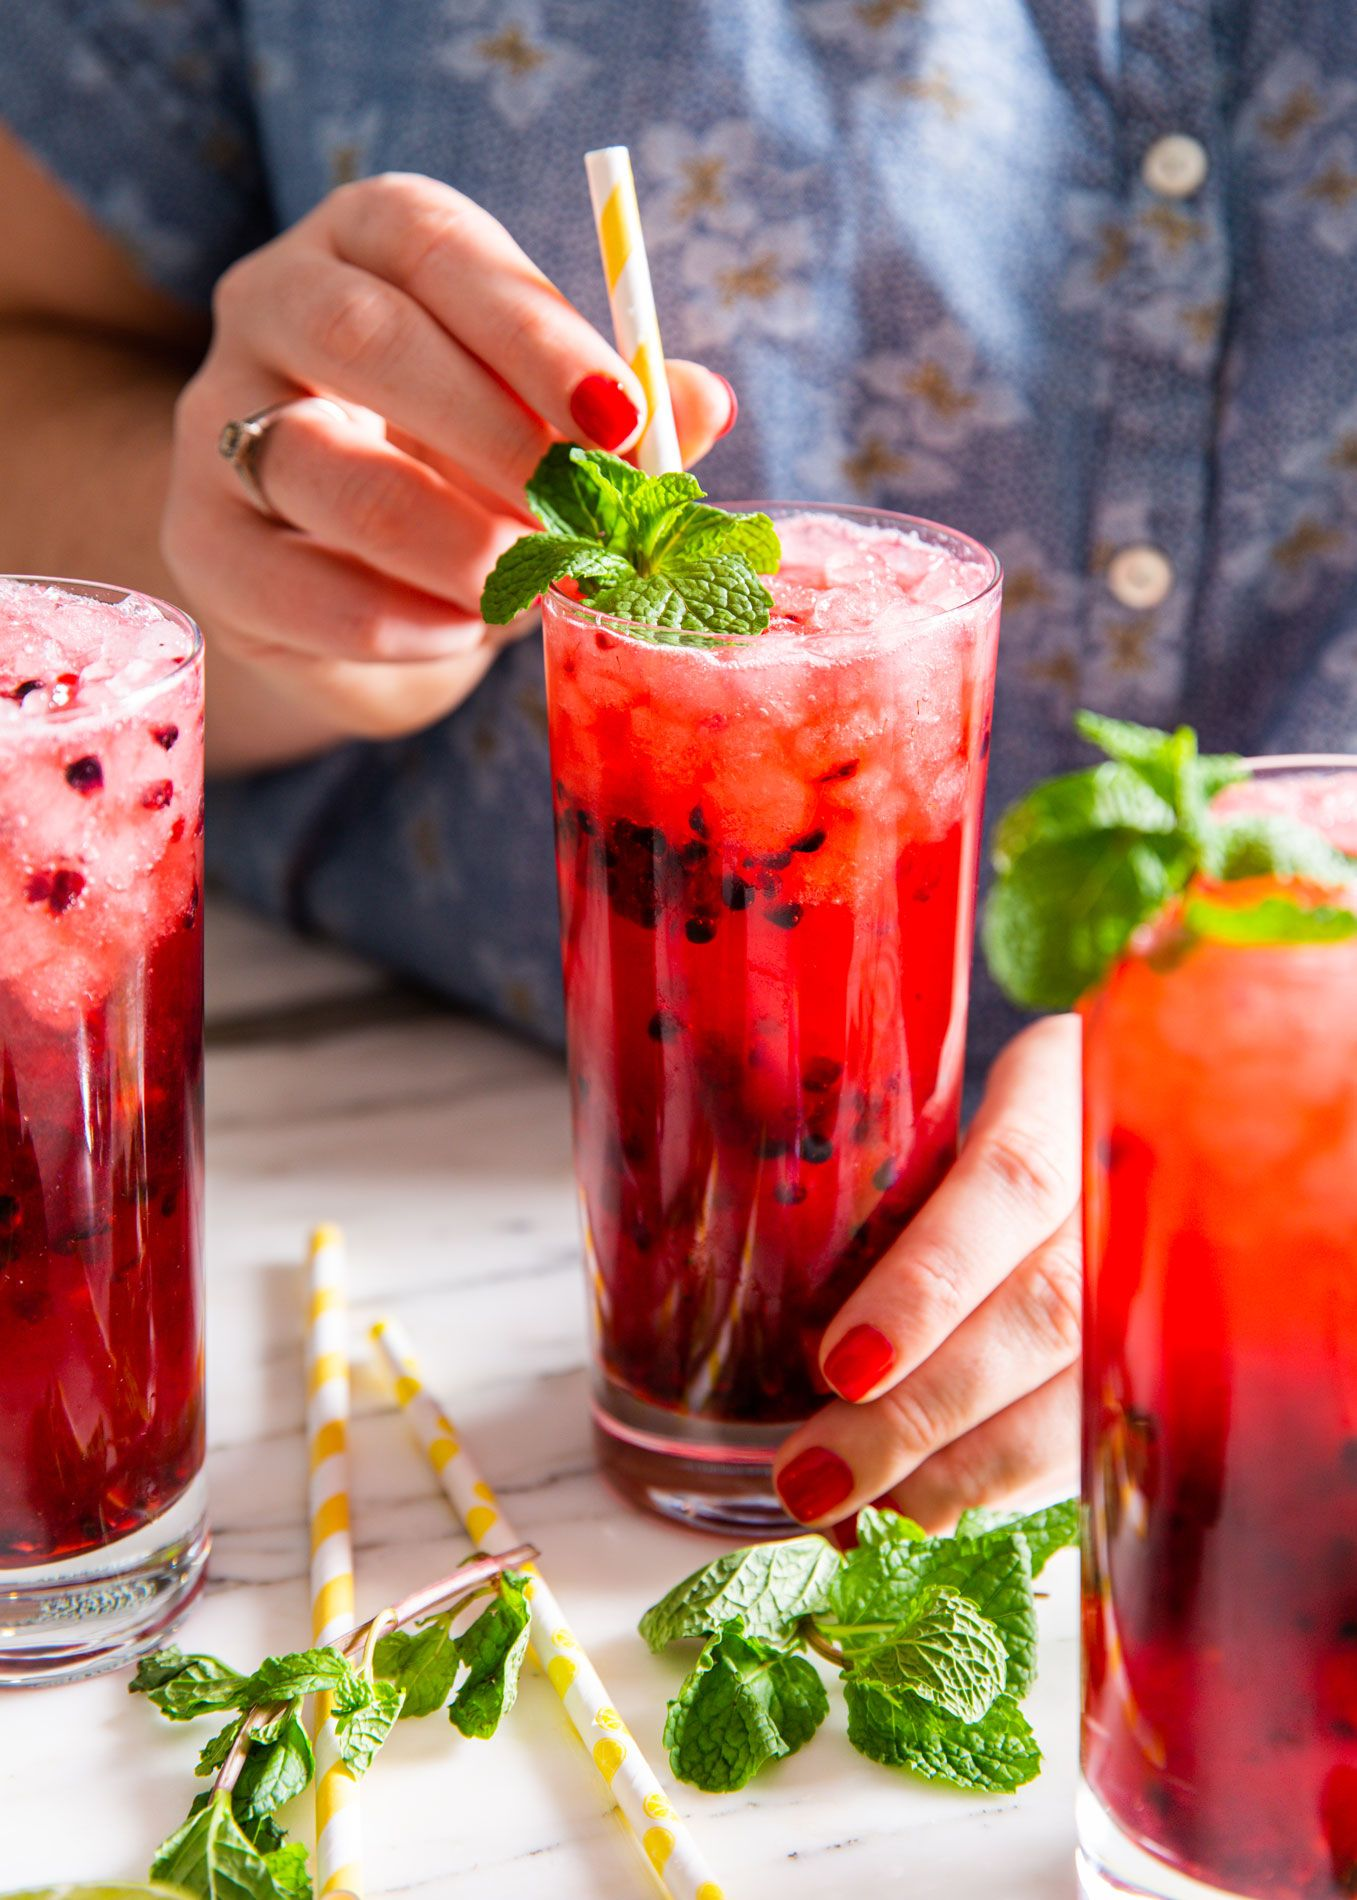 20 Easy Non Alcoholic Party Drinks Recipes For Alcohol Free Summer Drinks